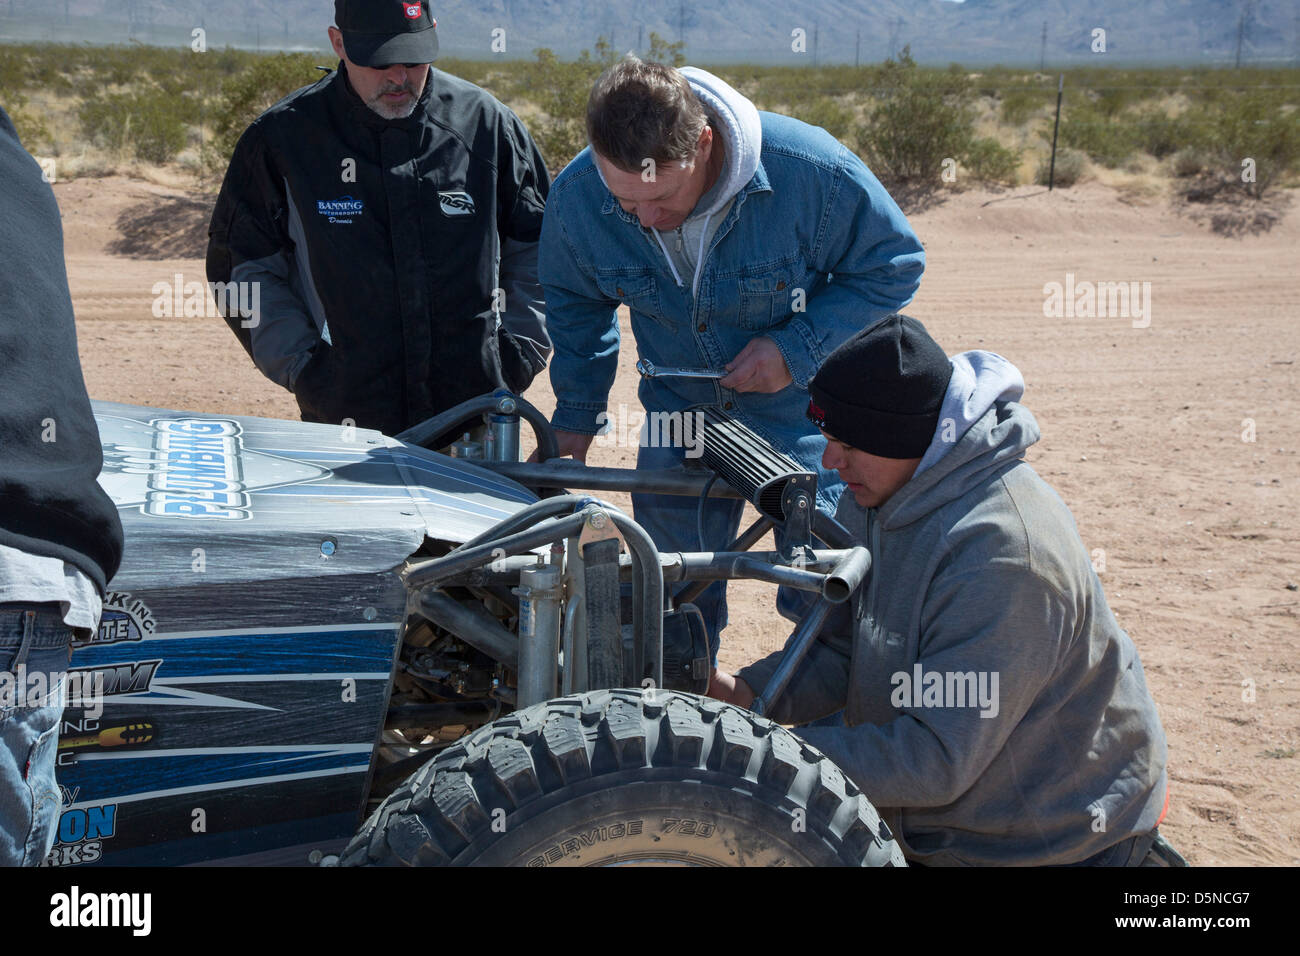 Crew members work on a car in the pits during the Mint 400 off-road auto race through the Mojave Desert - Stock Image